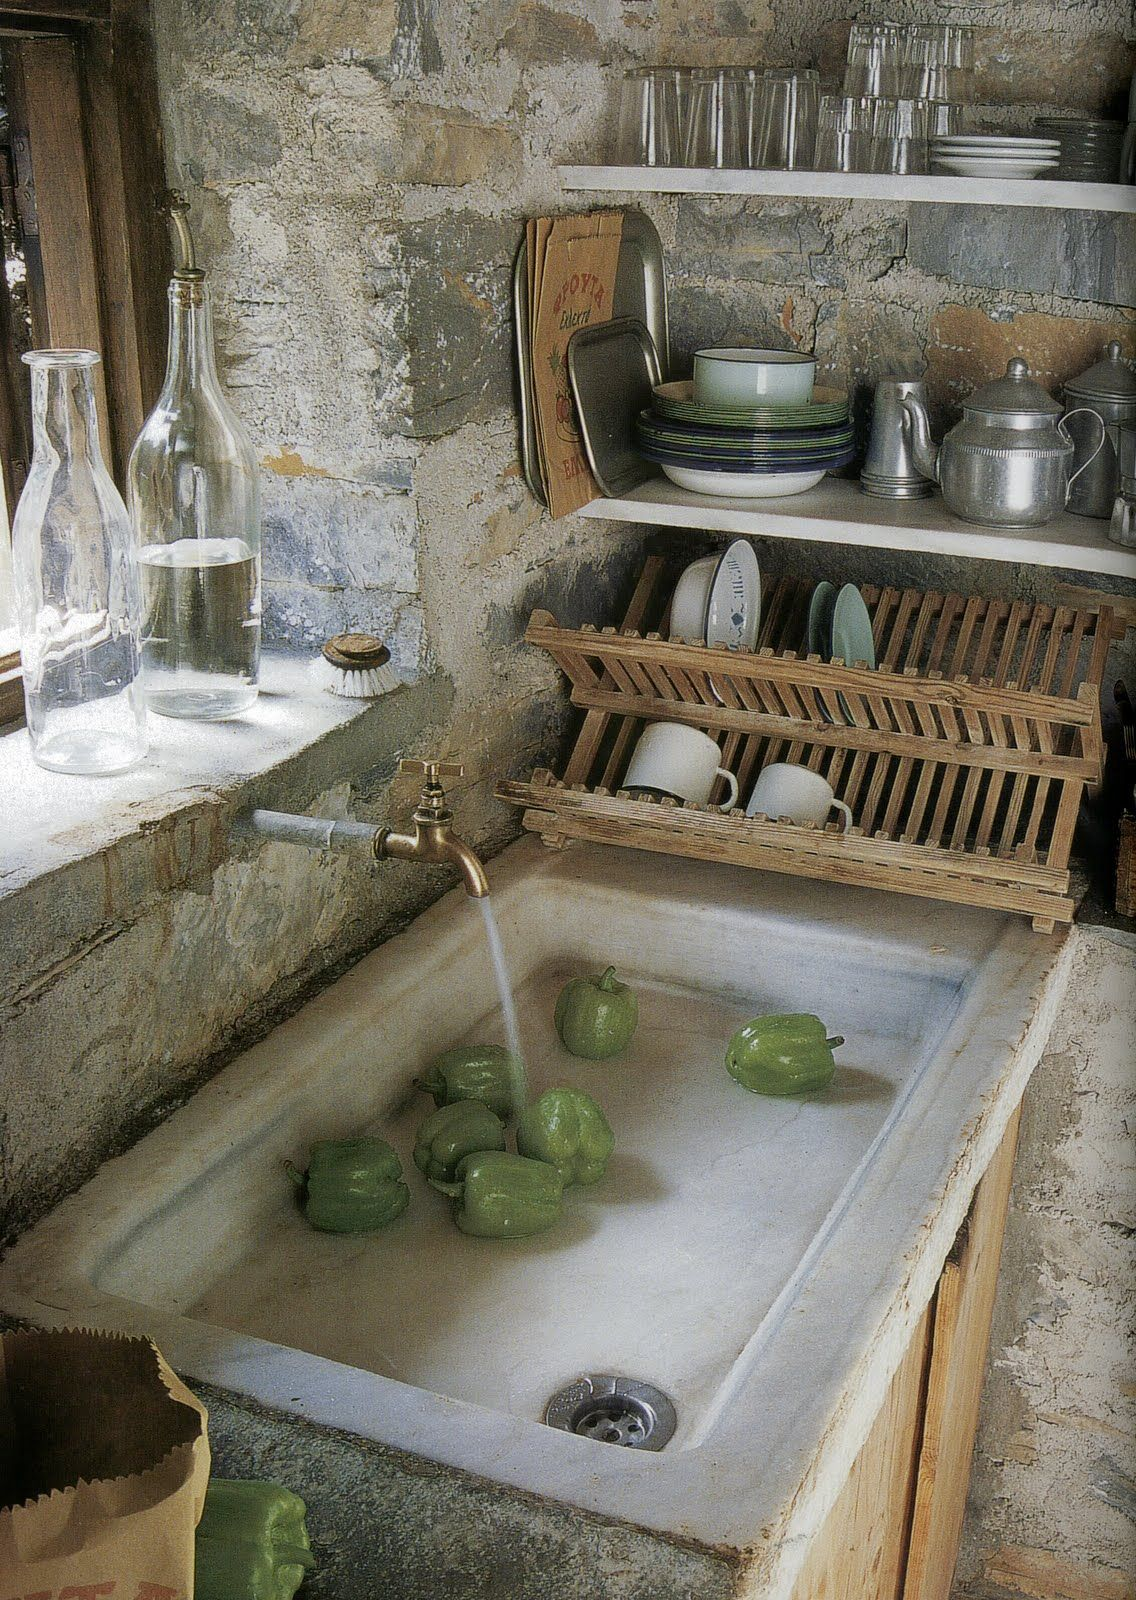 Window above kitchen sink  provencal sink  charming sinks  pinterest  sinks kitchens and nice